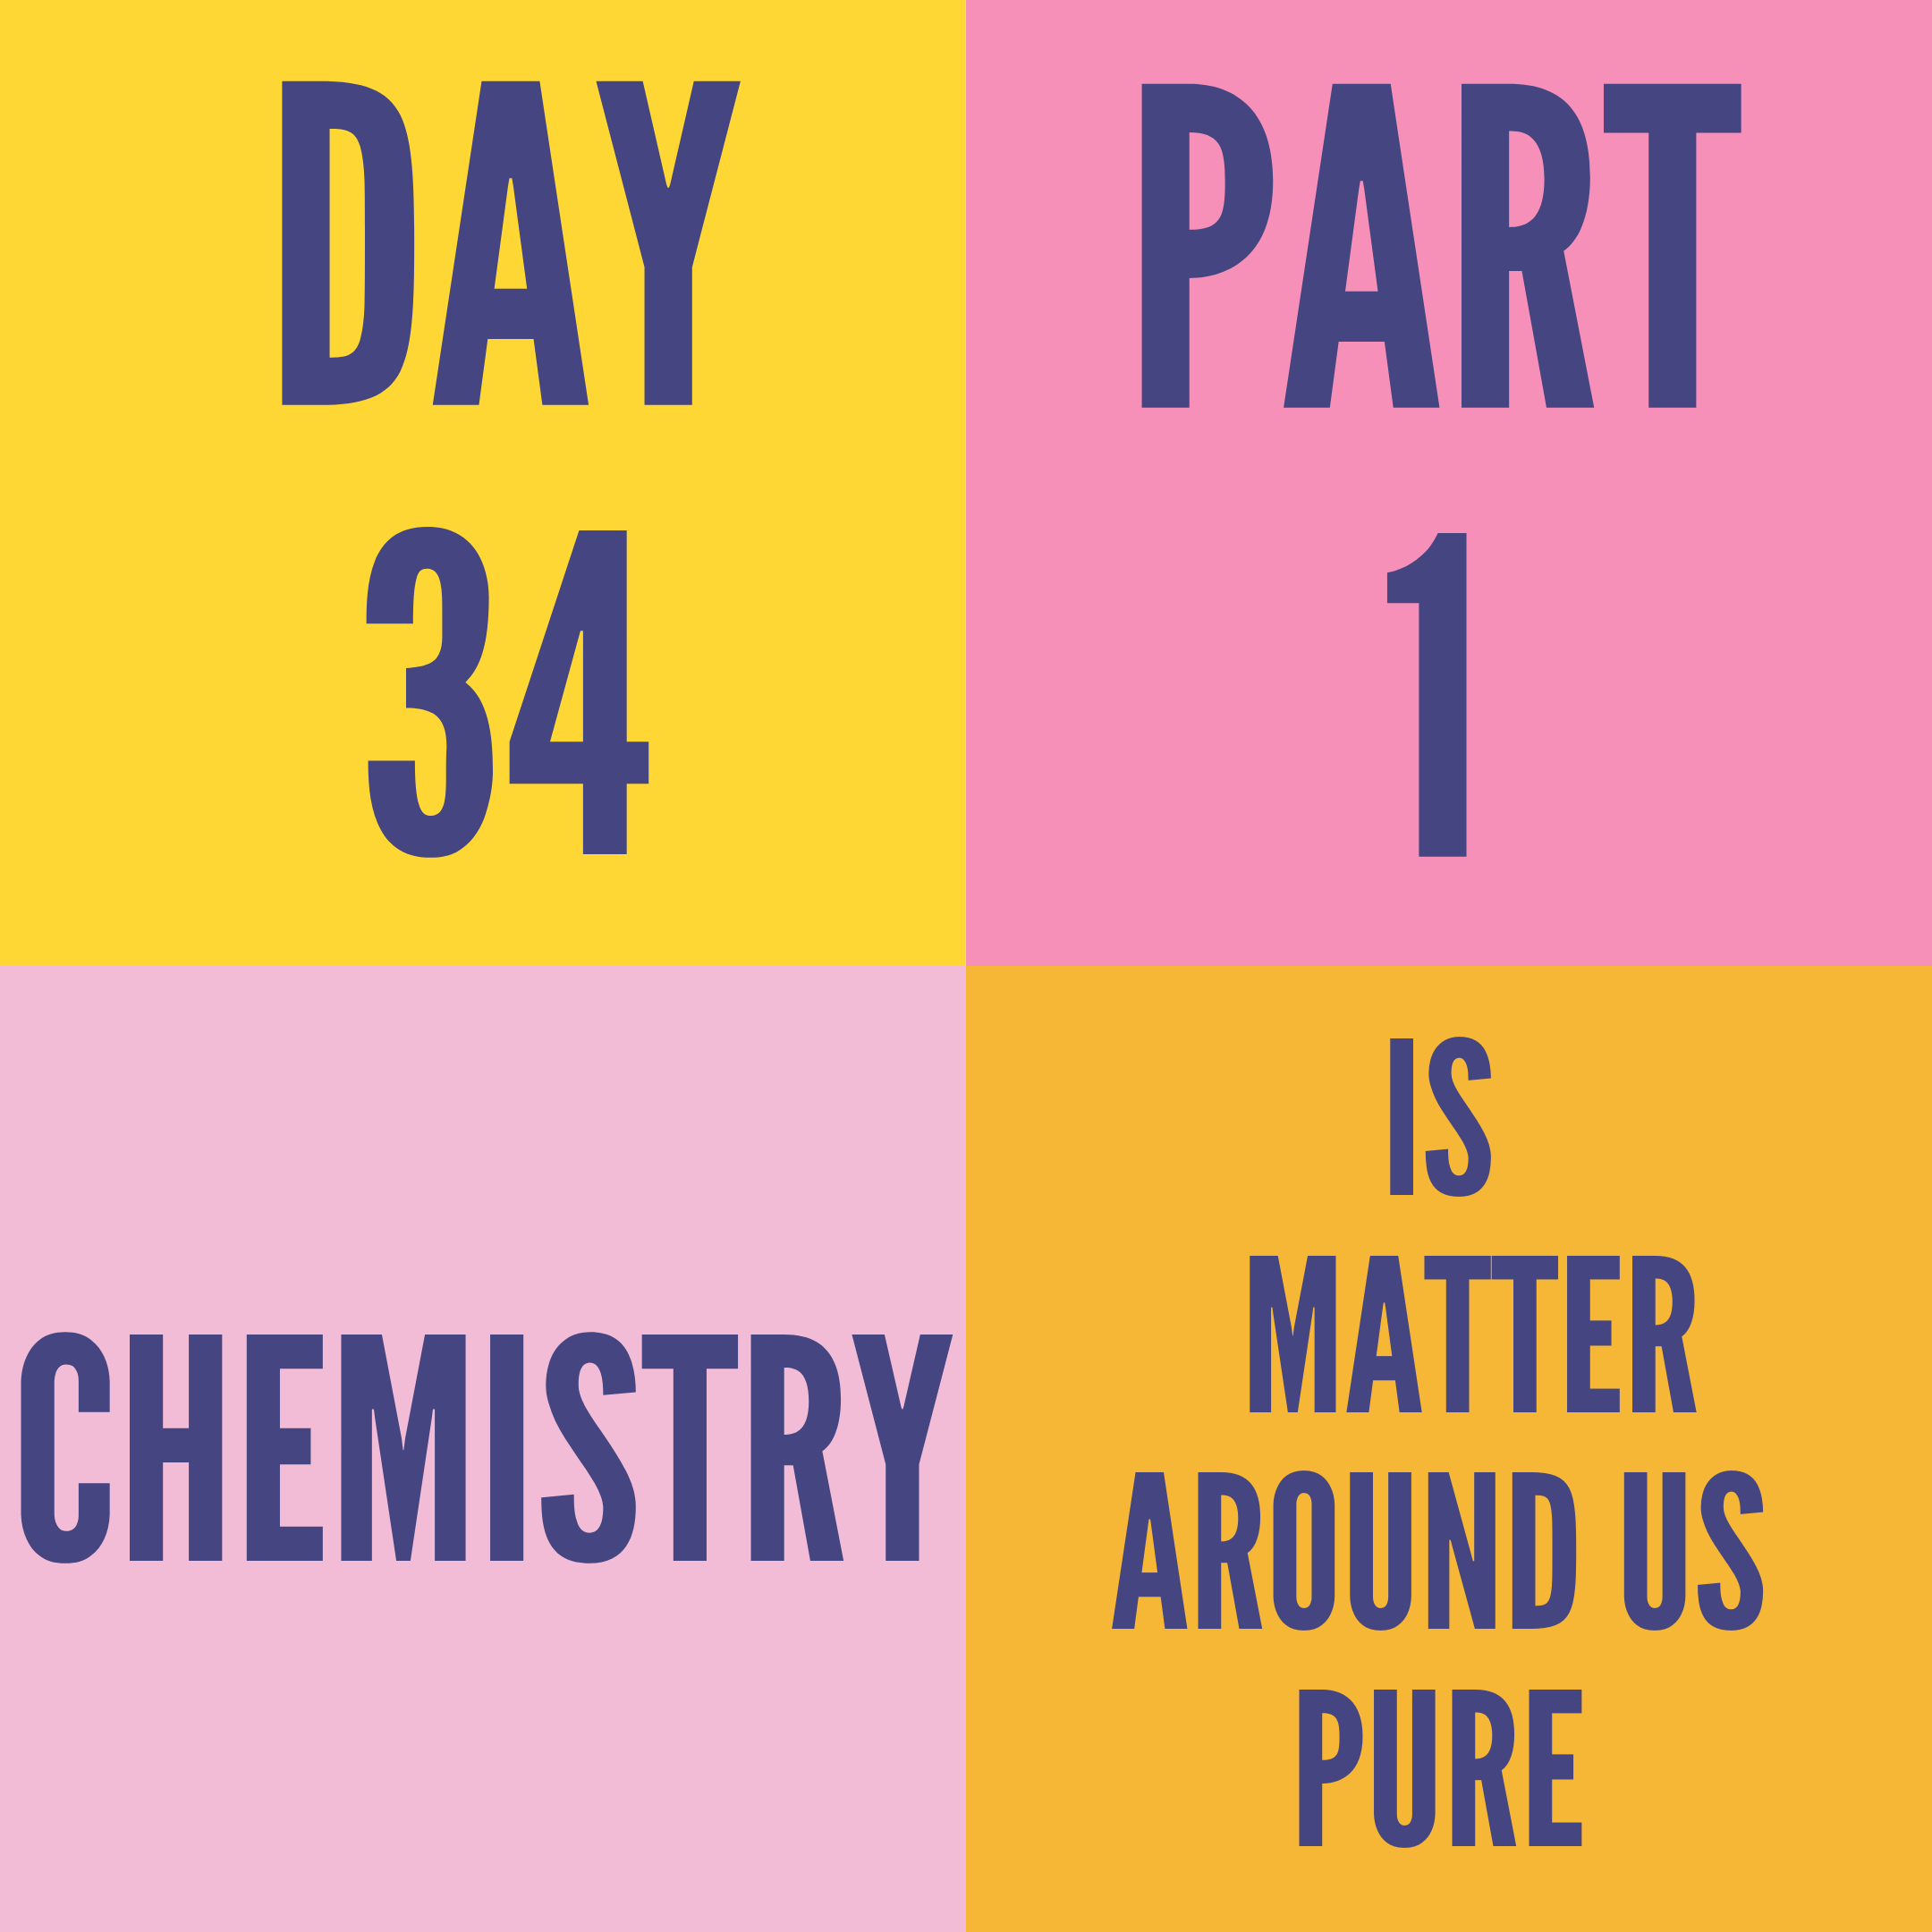 DAY-34 PART-1 IS MATTER AROUND US PURE